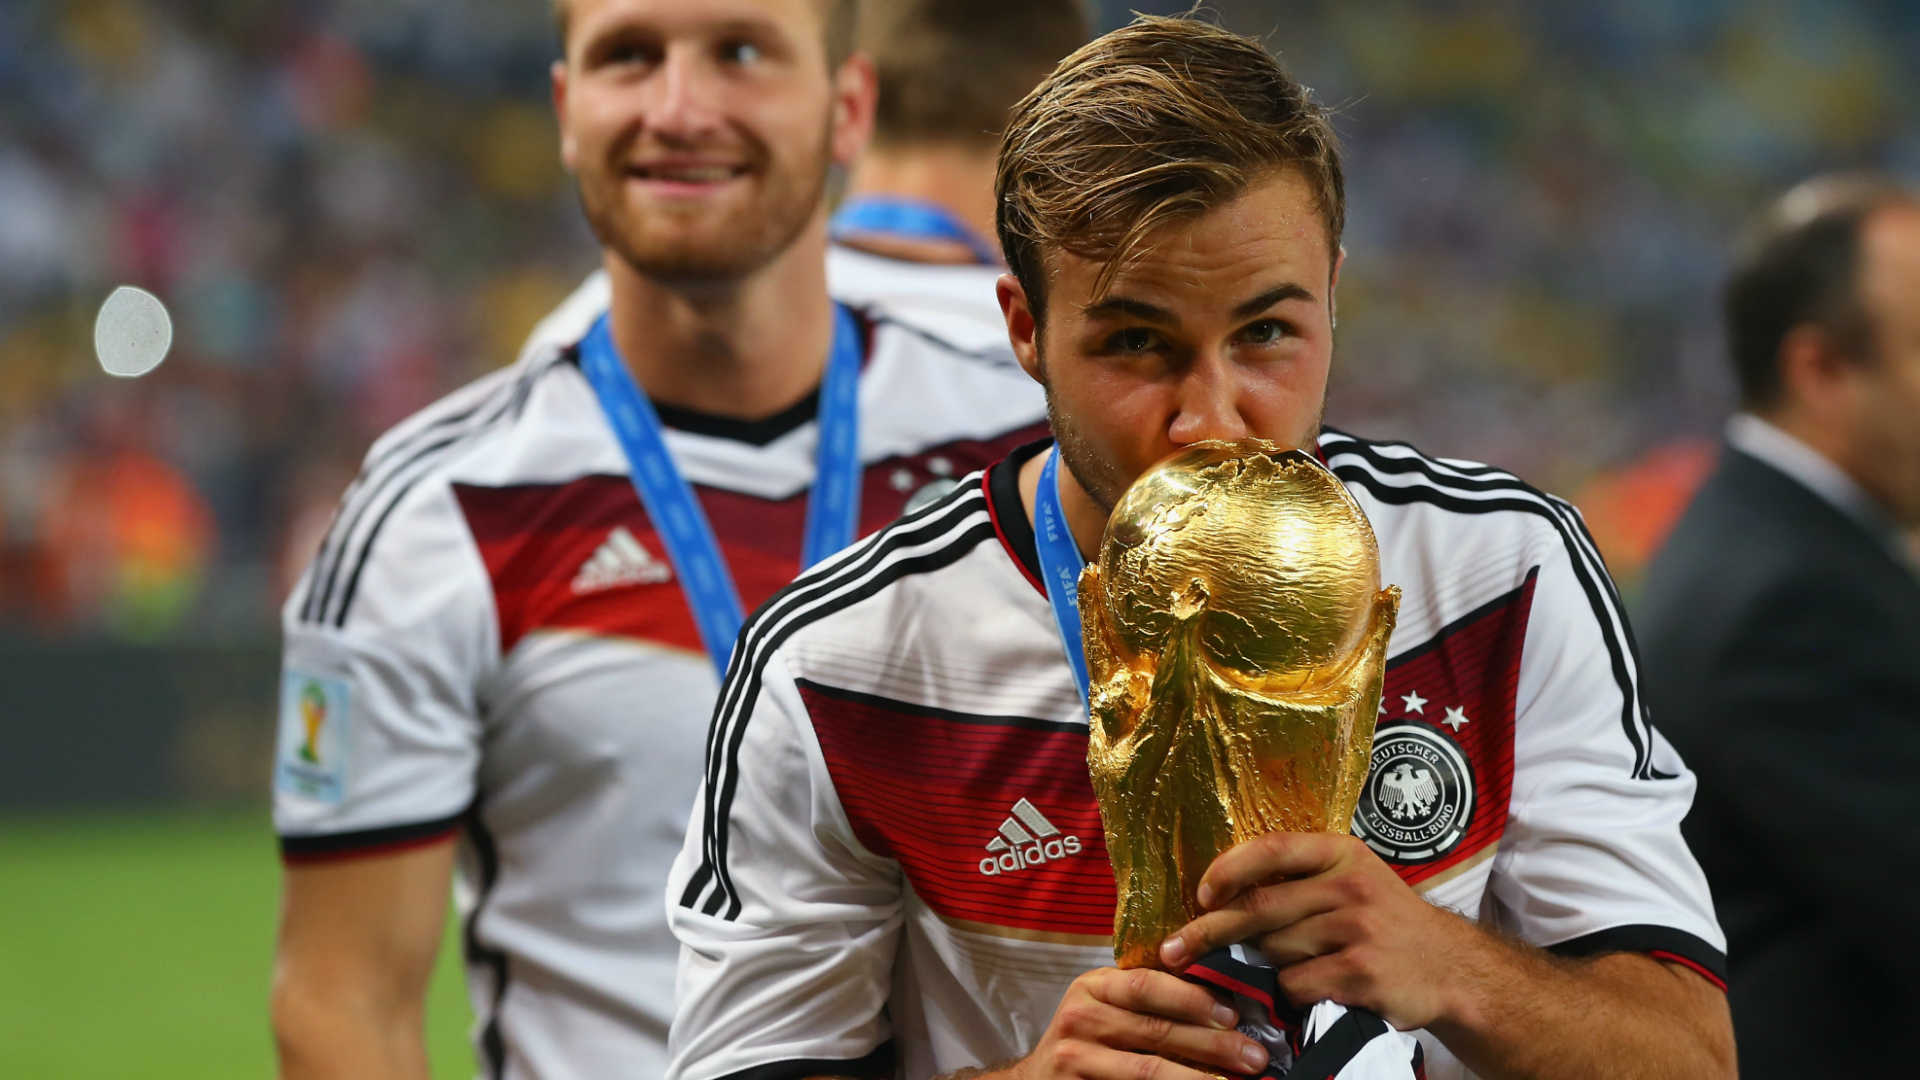 Mario Gotze Germany World Cup 2014